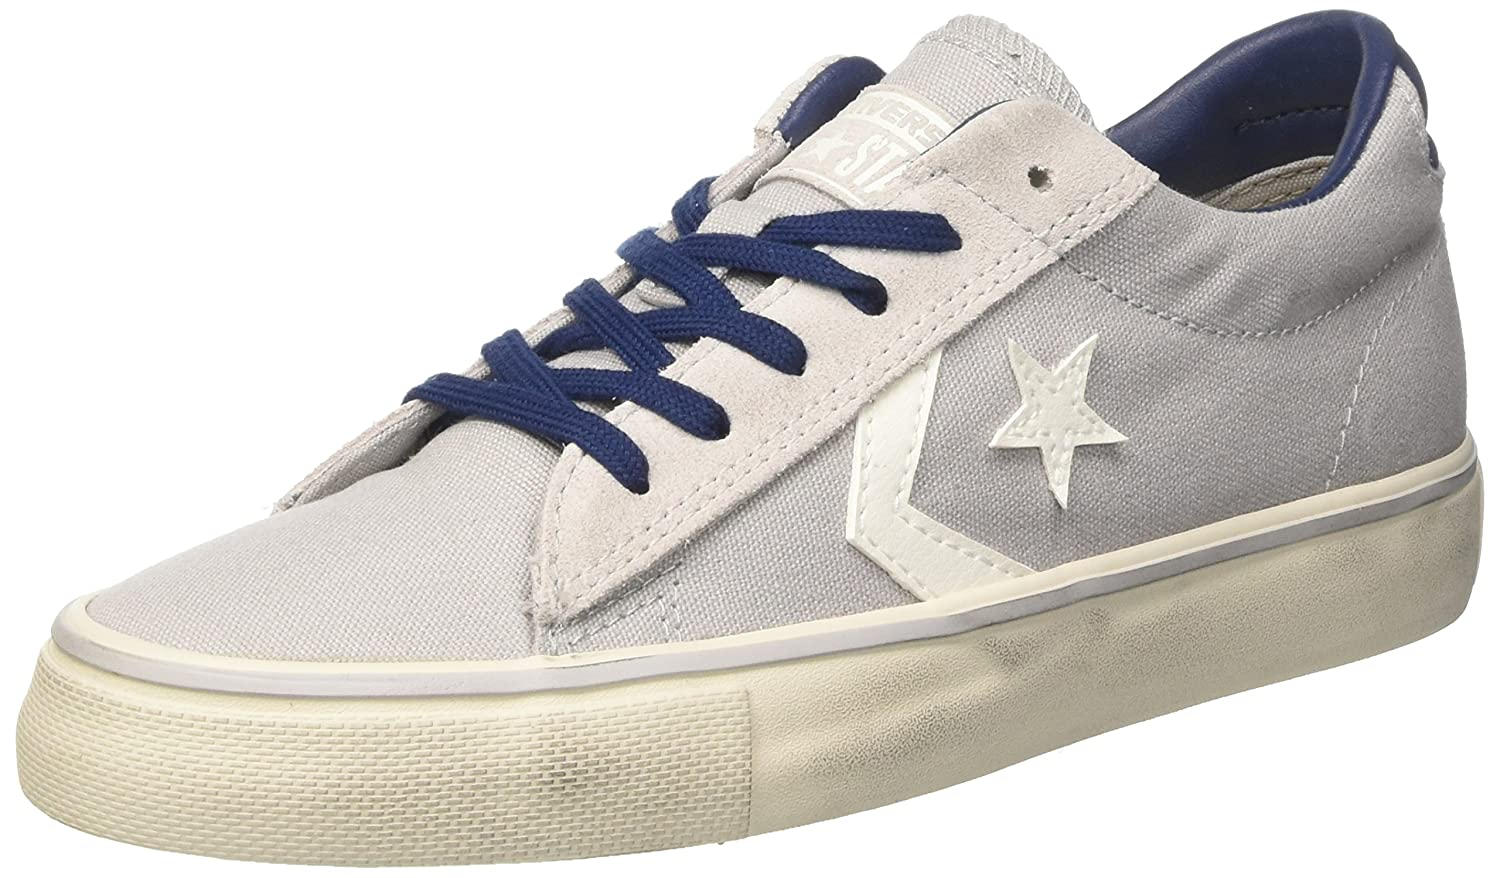 MultiCouleure (Ash gris Turtledove Navy Ash gris Turtledove Navy) Converse 156792c, Chaussures Multisport Outdoor Mixte Adulte 39 EU